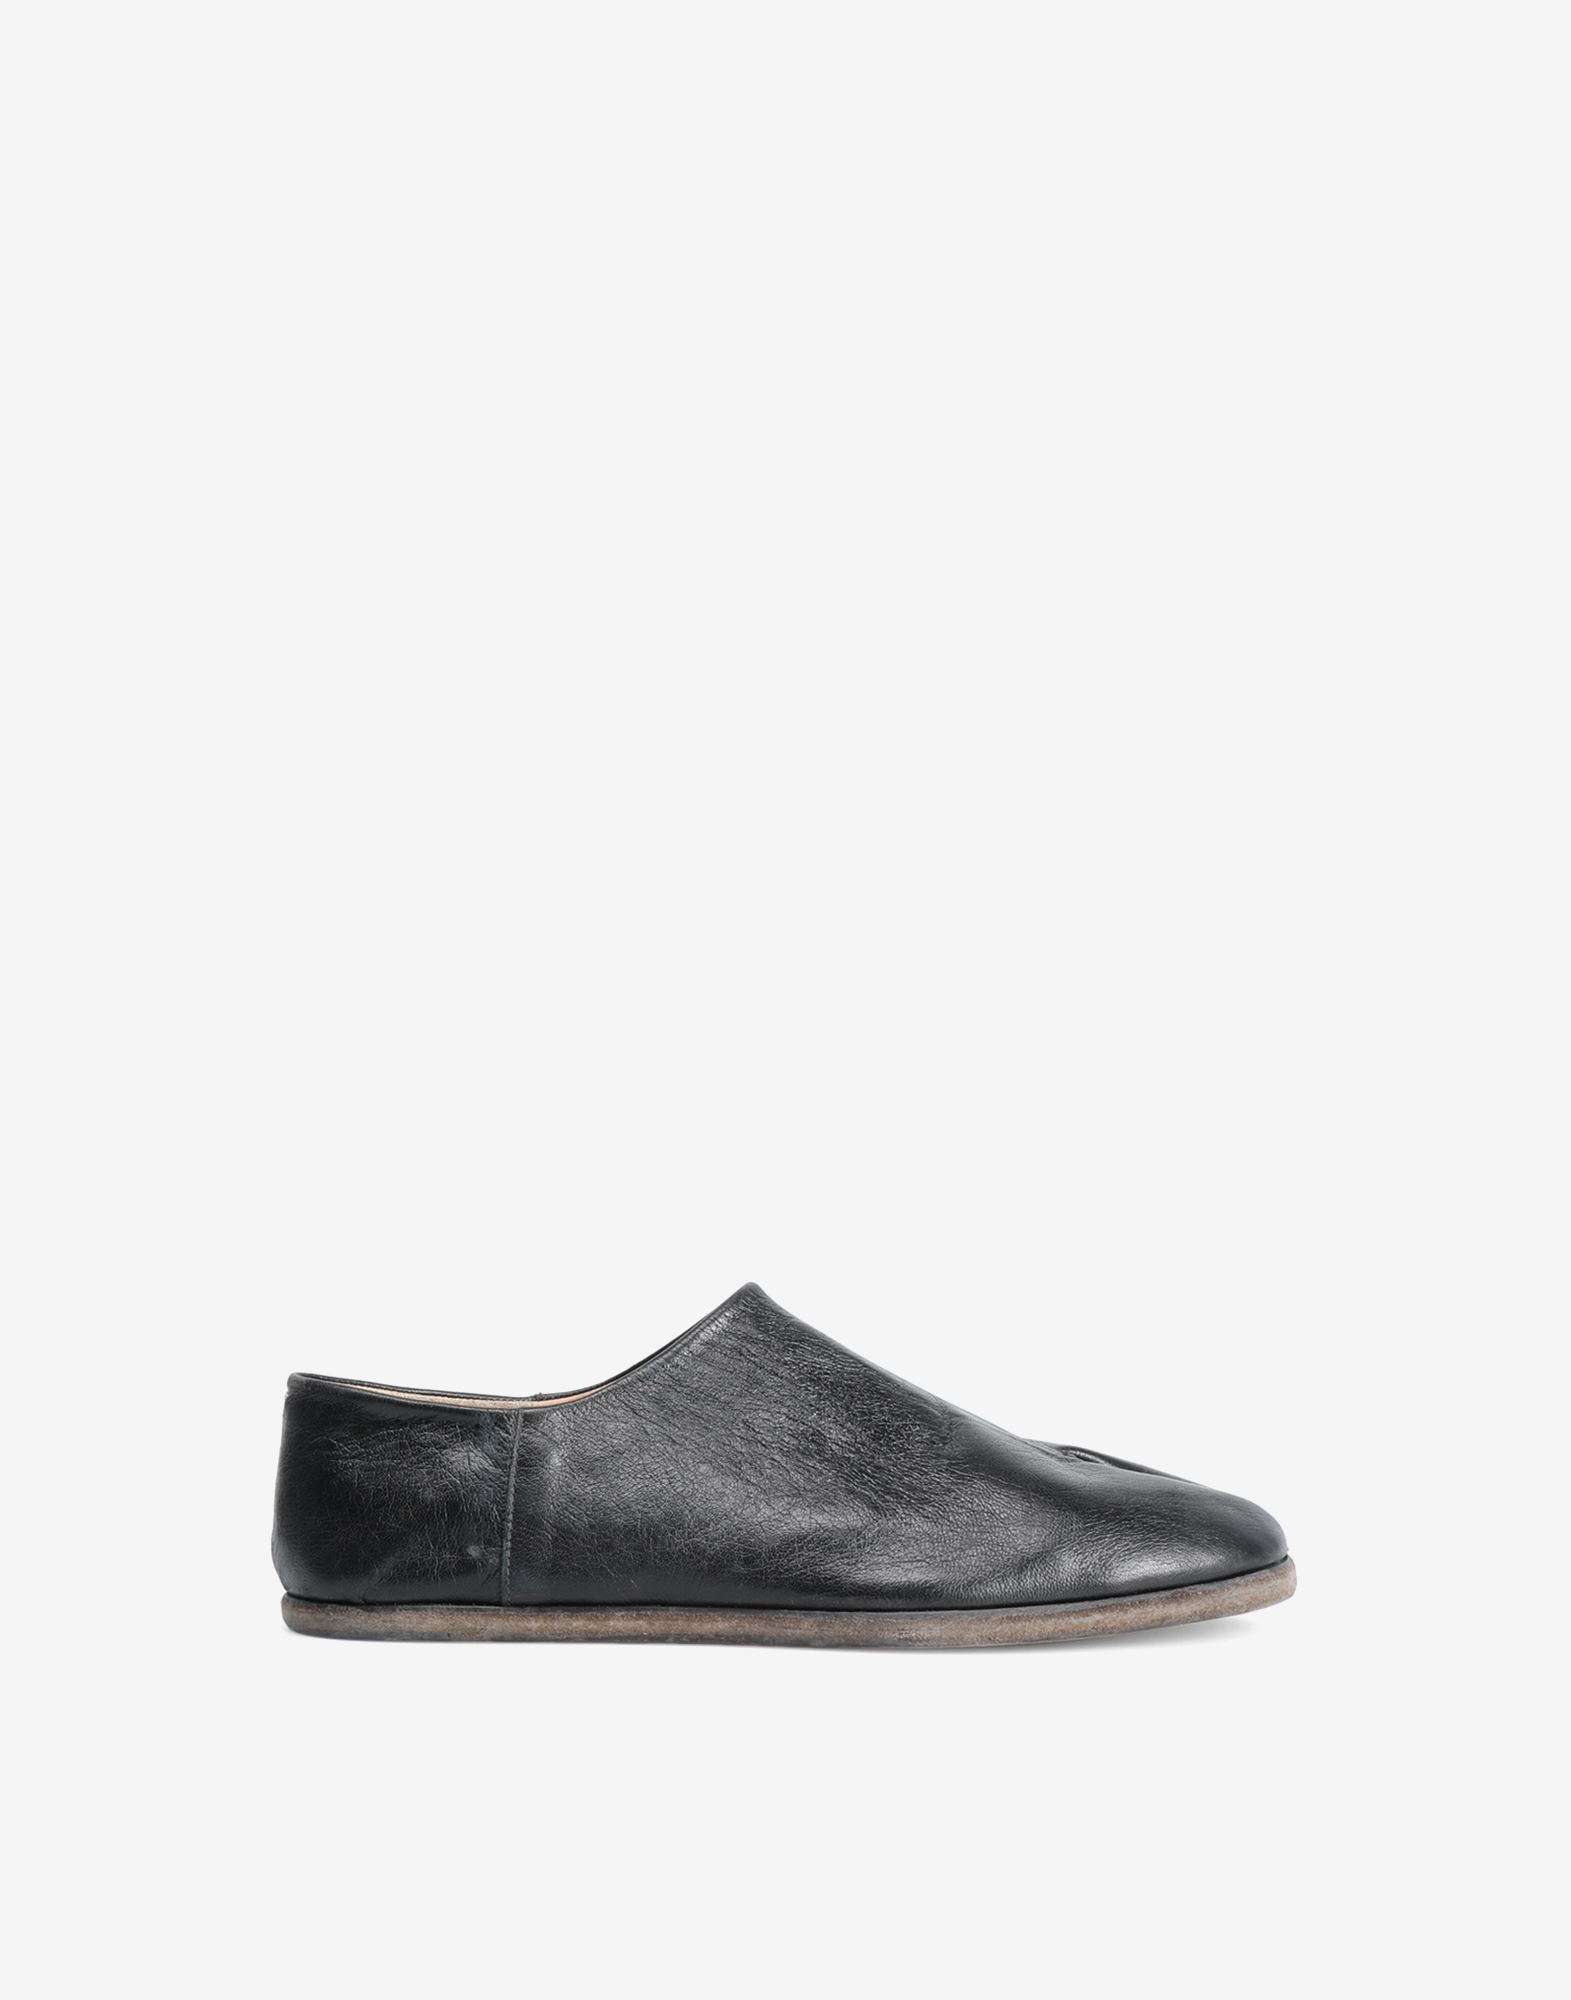 MAISON MARGIELA Slip-on Tabi shoes Moccasins Man f